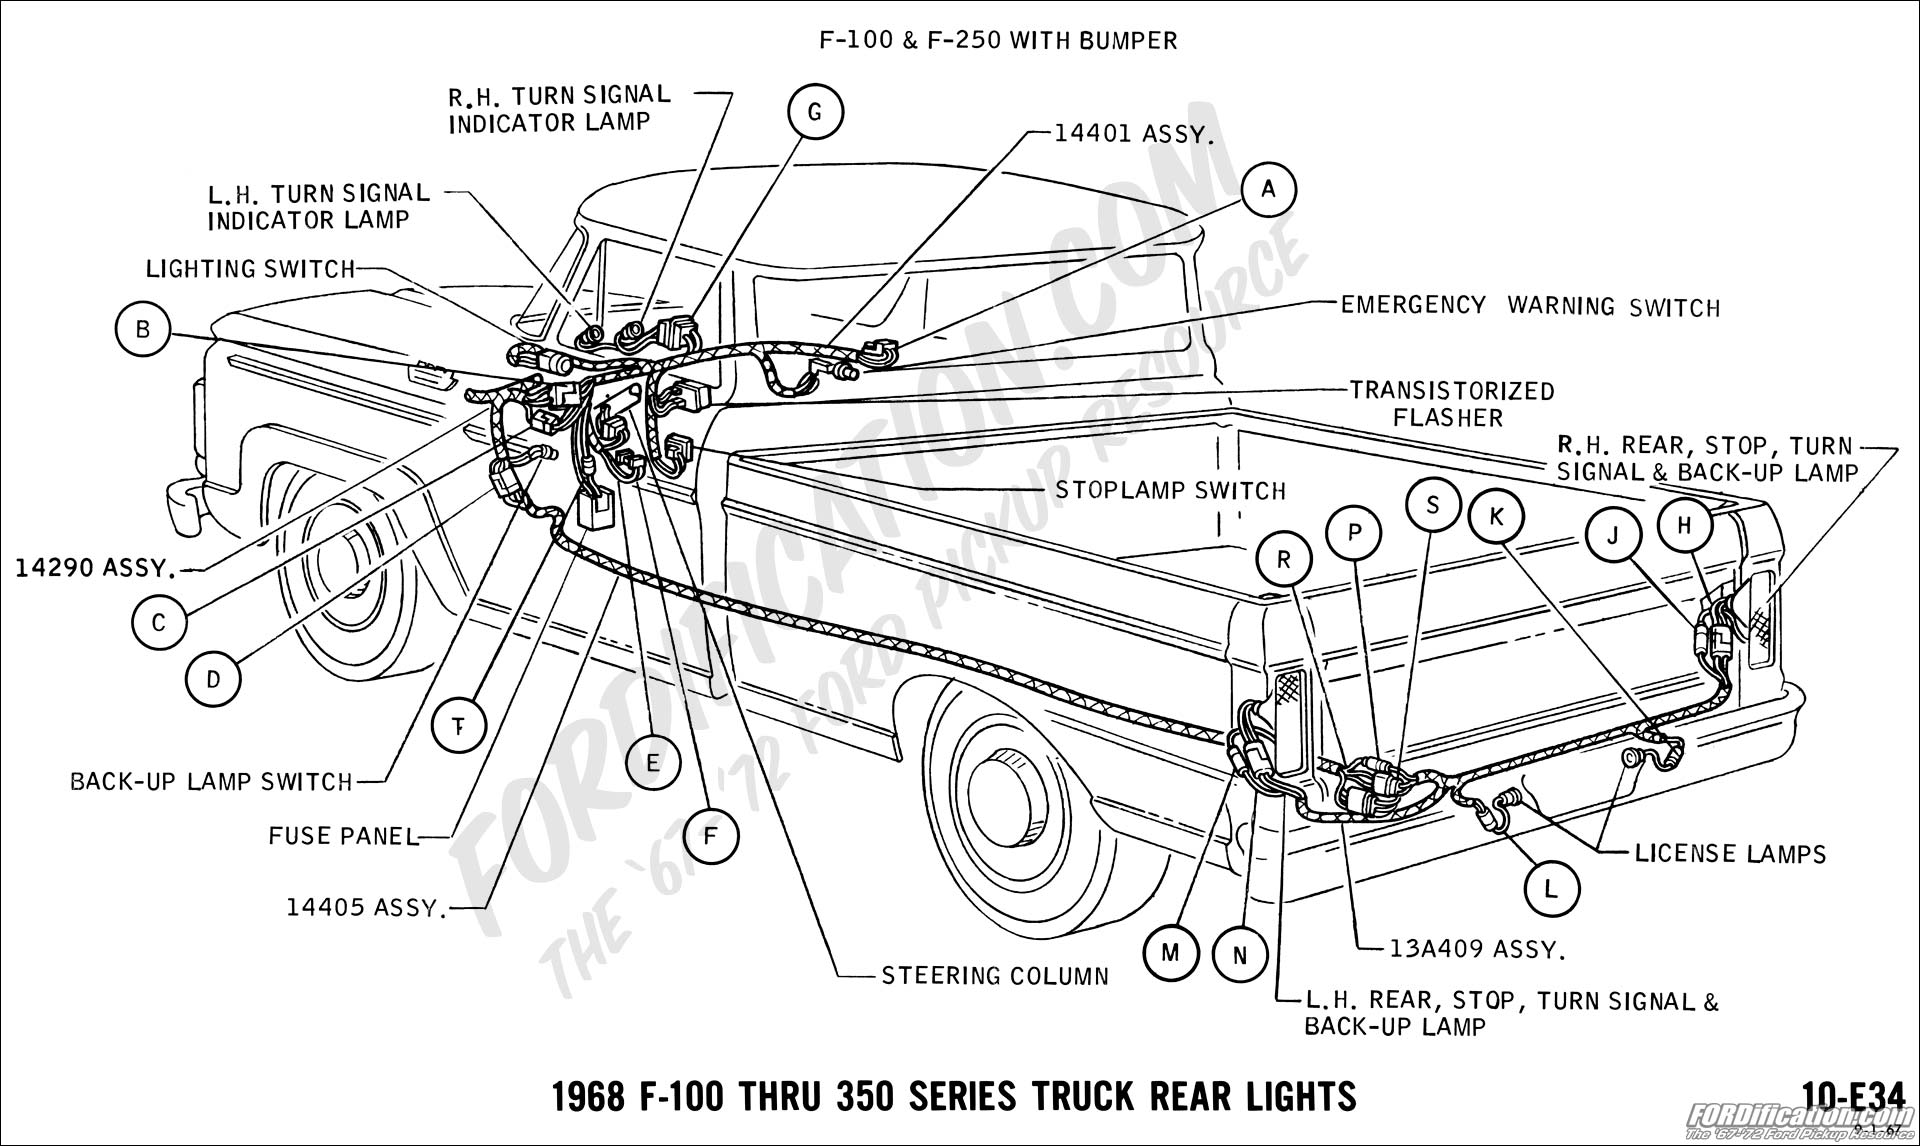 Schematics h further Ign switch as well 2002 Nissan Frontier Wiring Diagram together with RepairGuideContent further P 0996b43f802c54c5. on wire diagram 1986 toyota pickup cab